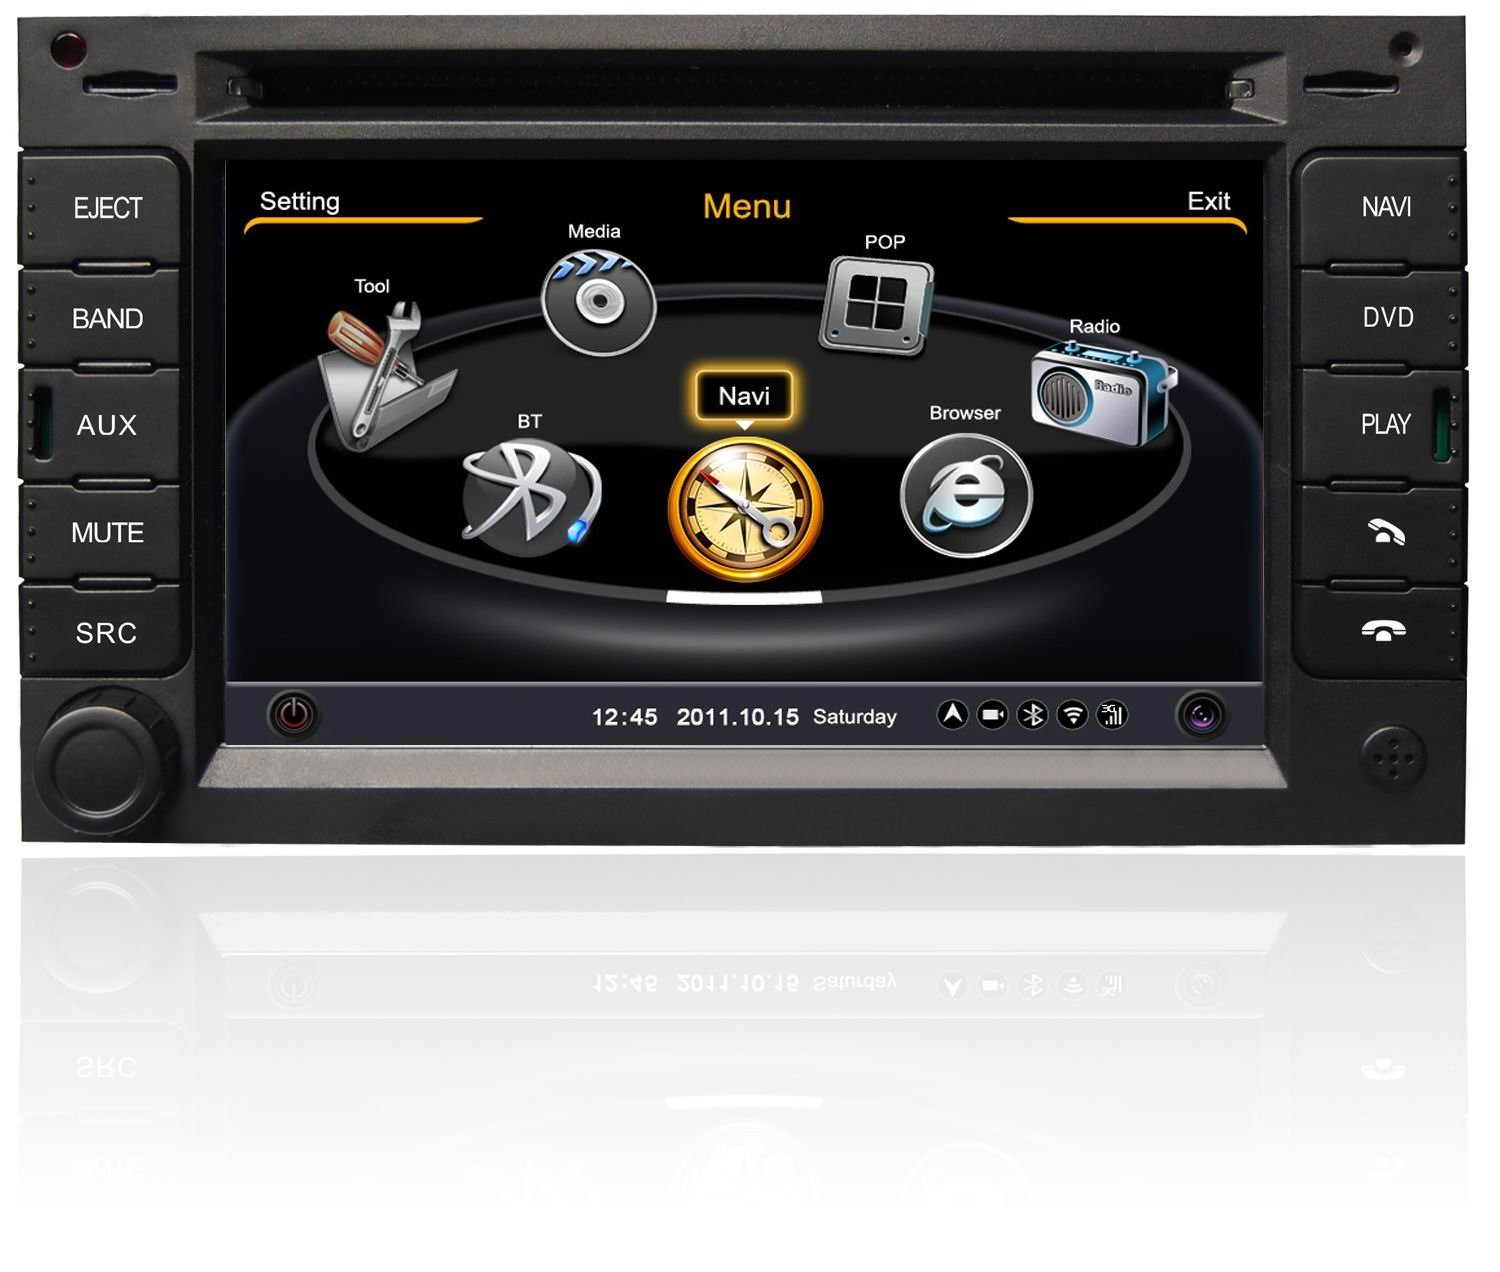 Koolertron For VW GOLF IV & Passat B5 & old Bora & Jetta 2004 Car DVD GPS Navigation With 3 Zone POP 3G/WIFI/20 Disc CDC/ DVD Recording/ Phonebook / Game with GPS Navigation Vehicle GPS with Maps (OEM Factory Style,Free Maps)